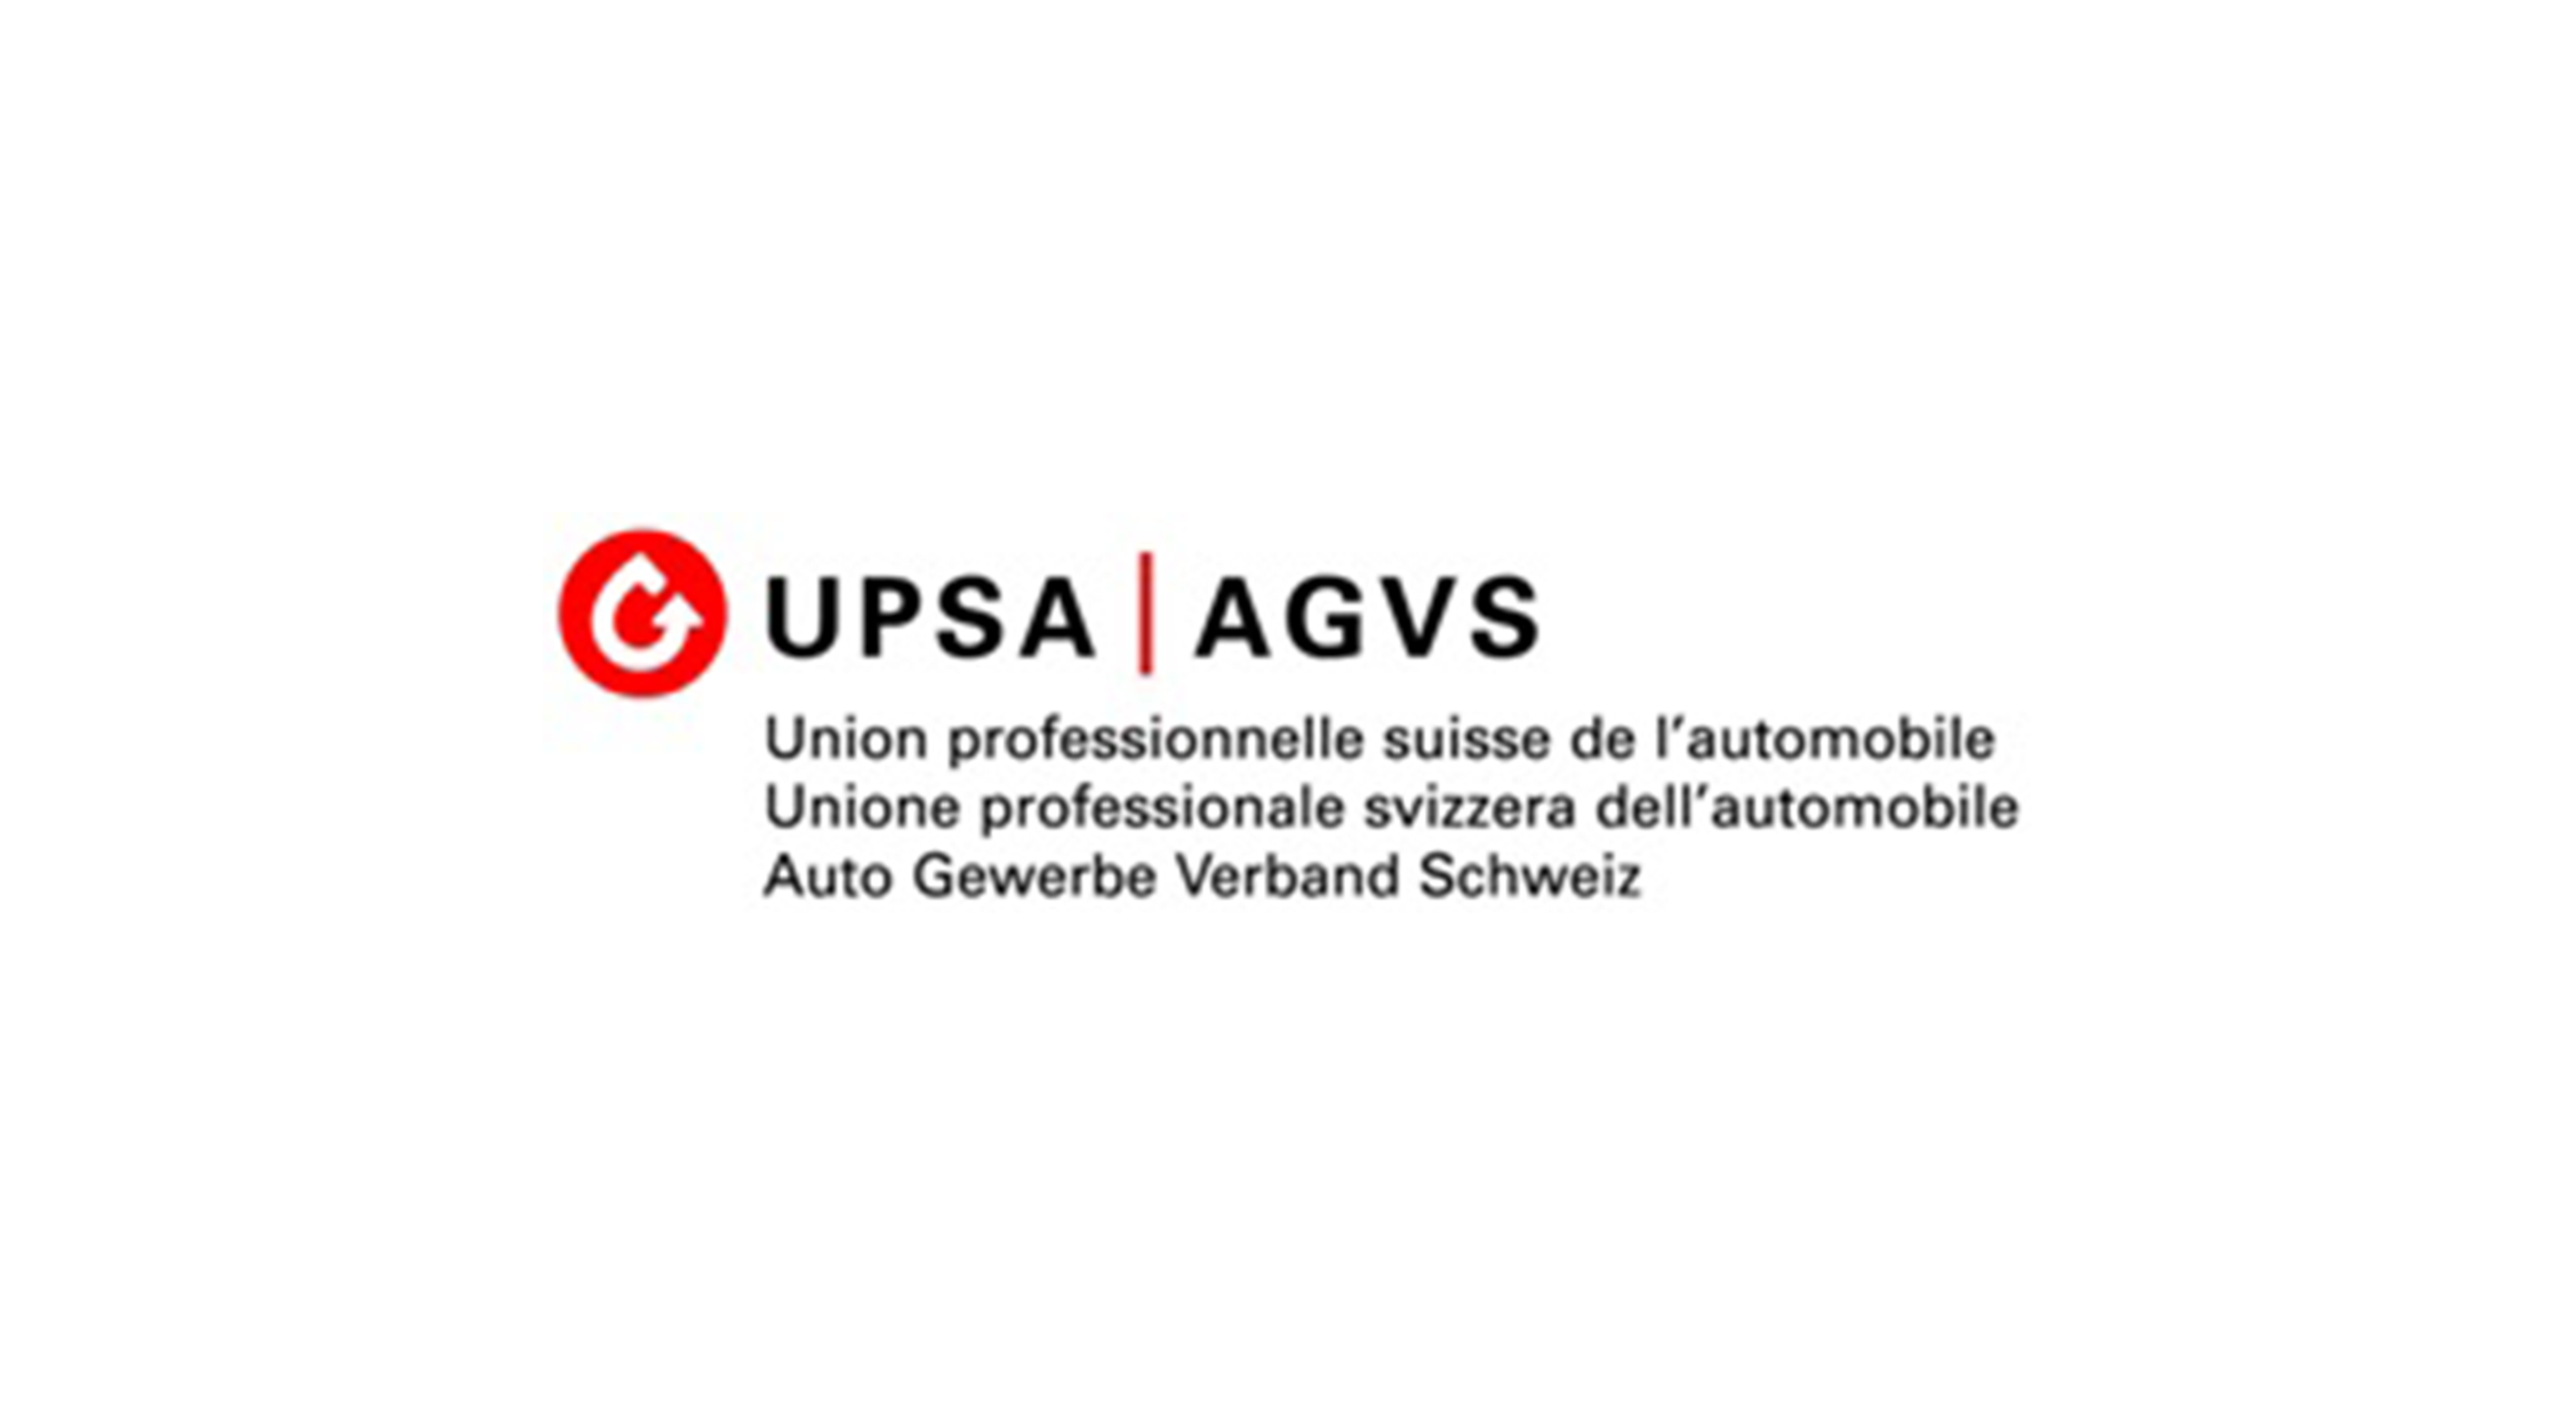 UPSA – Union des professionnels suisses de l'automobile